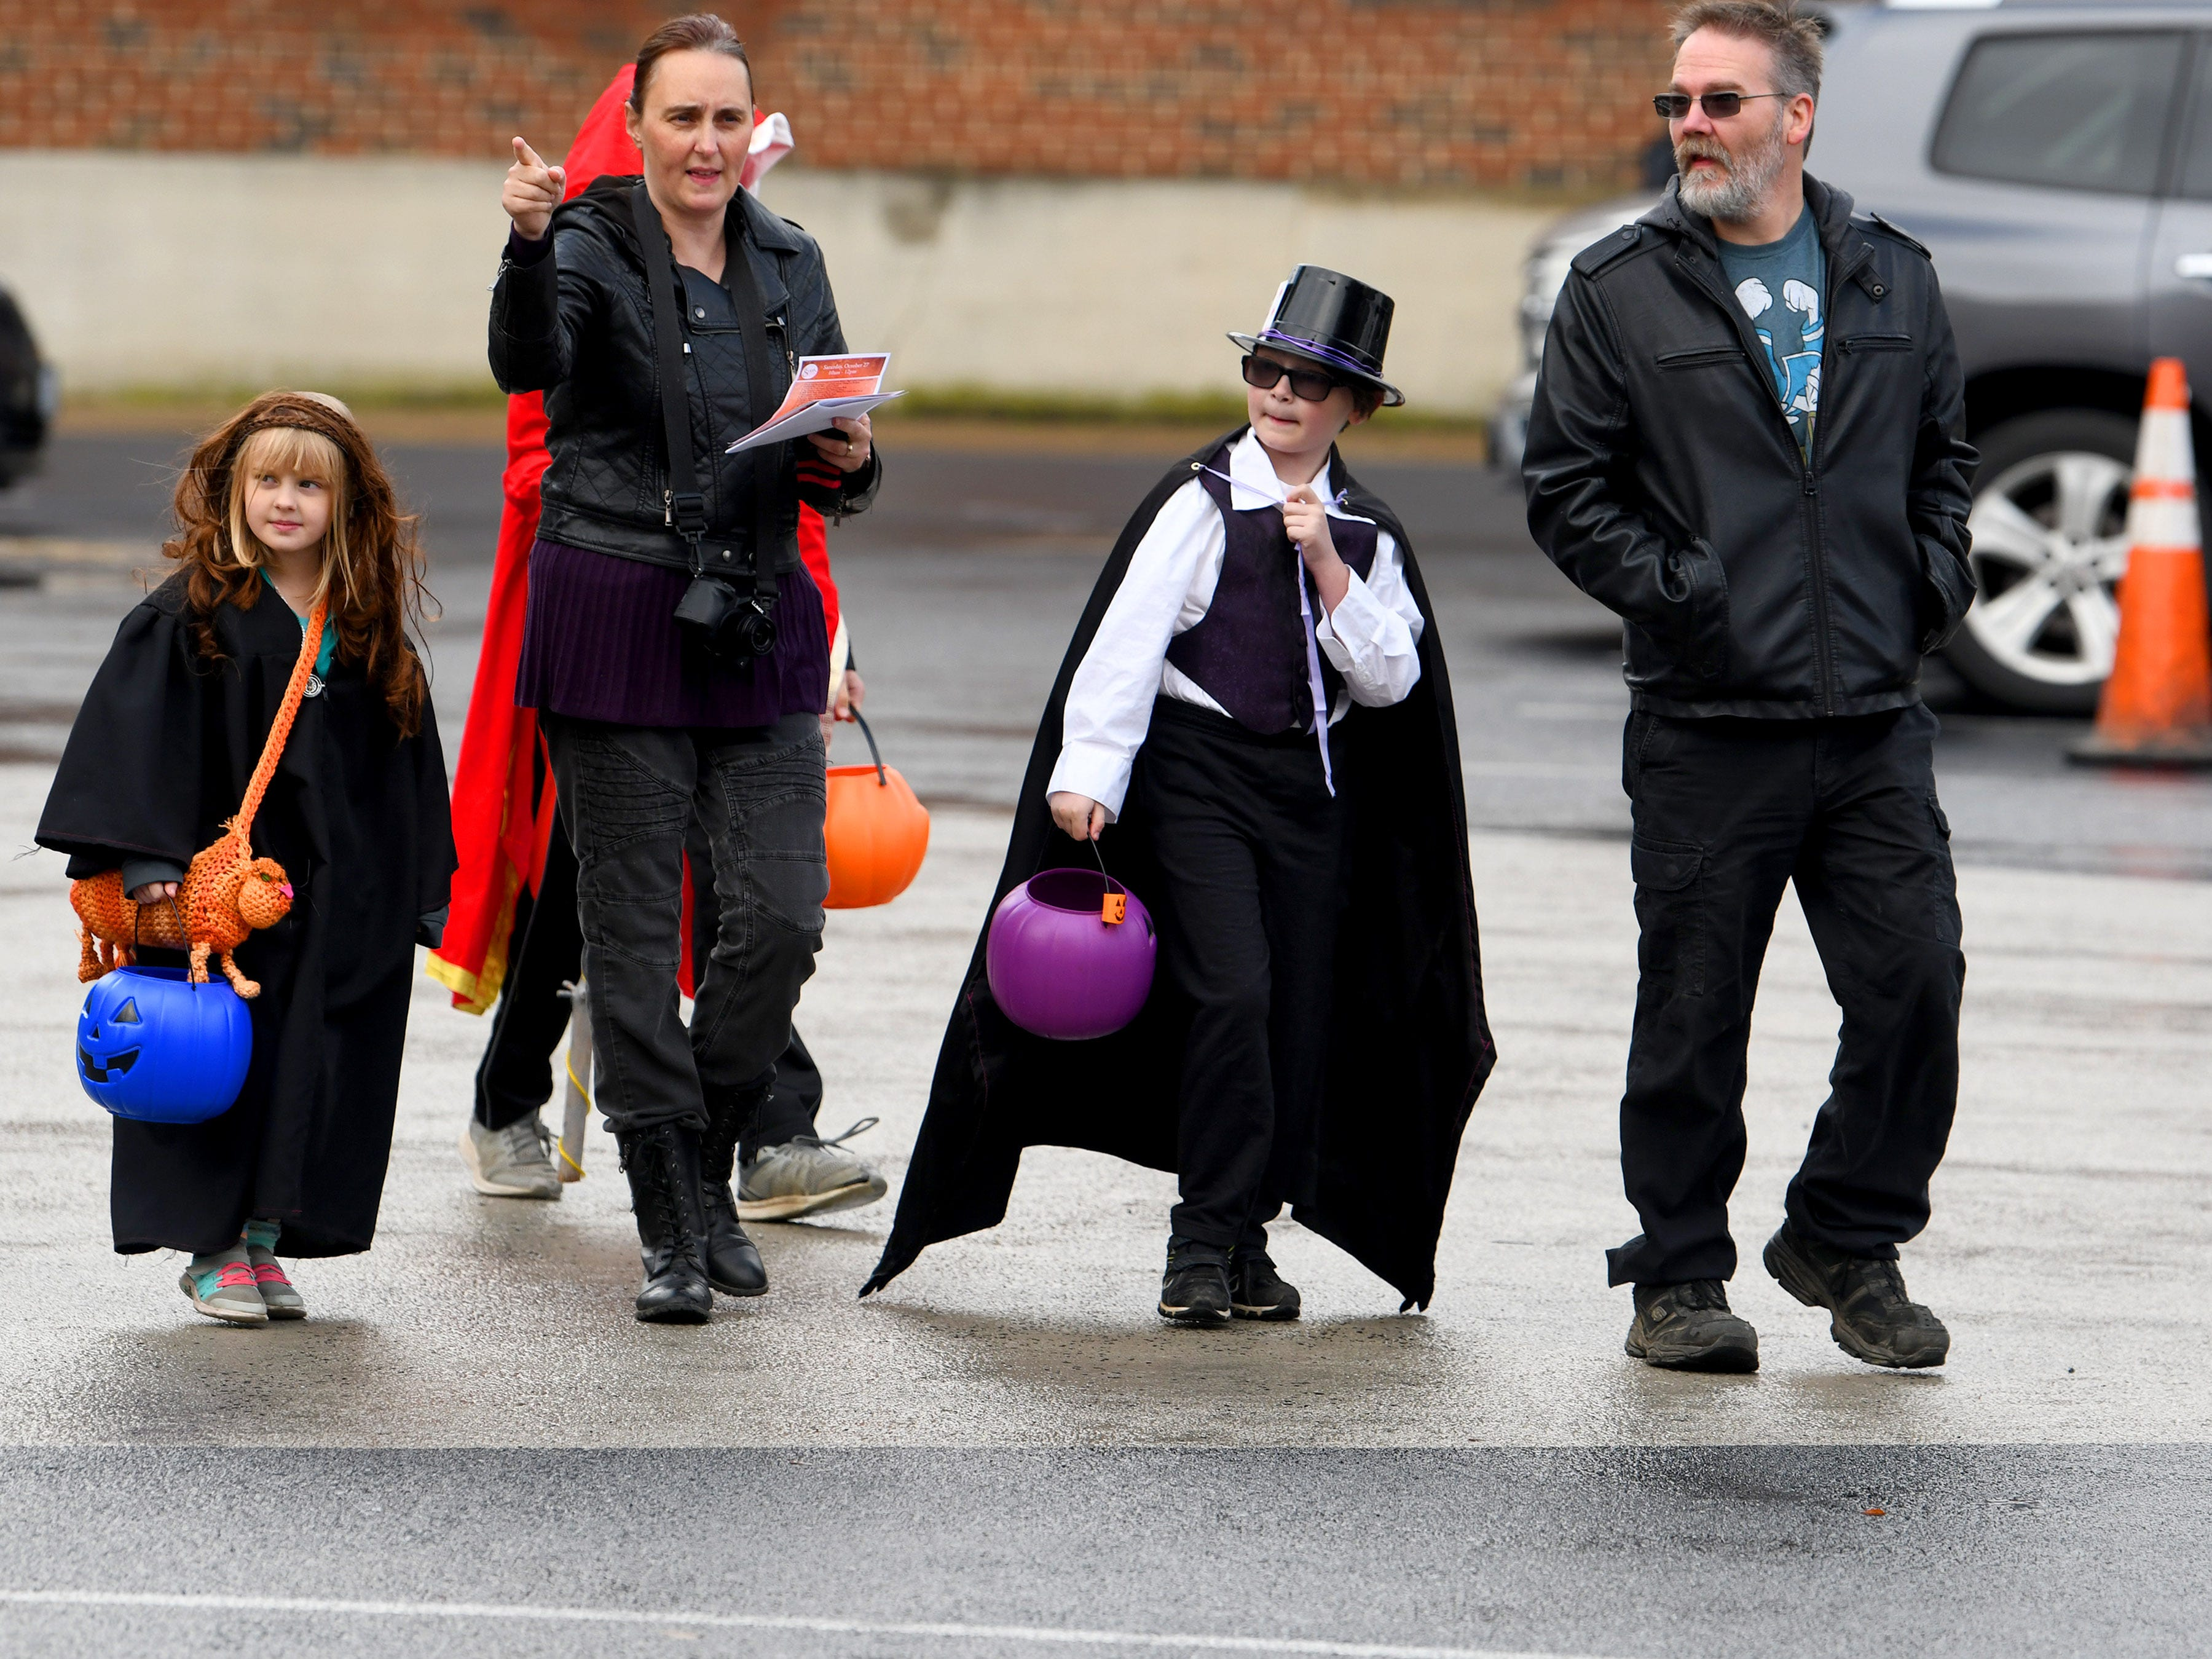 Trick-or-treaters cross a parking lot during the annual downtown trick-or-treating event in Staunton on Saturday, Oct. 27, 2018.